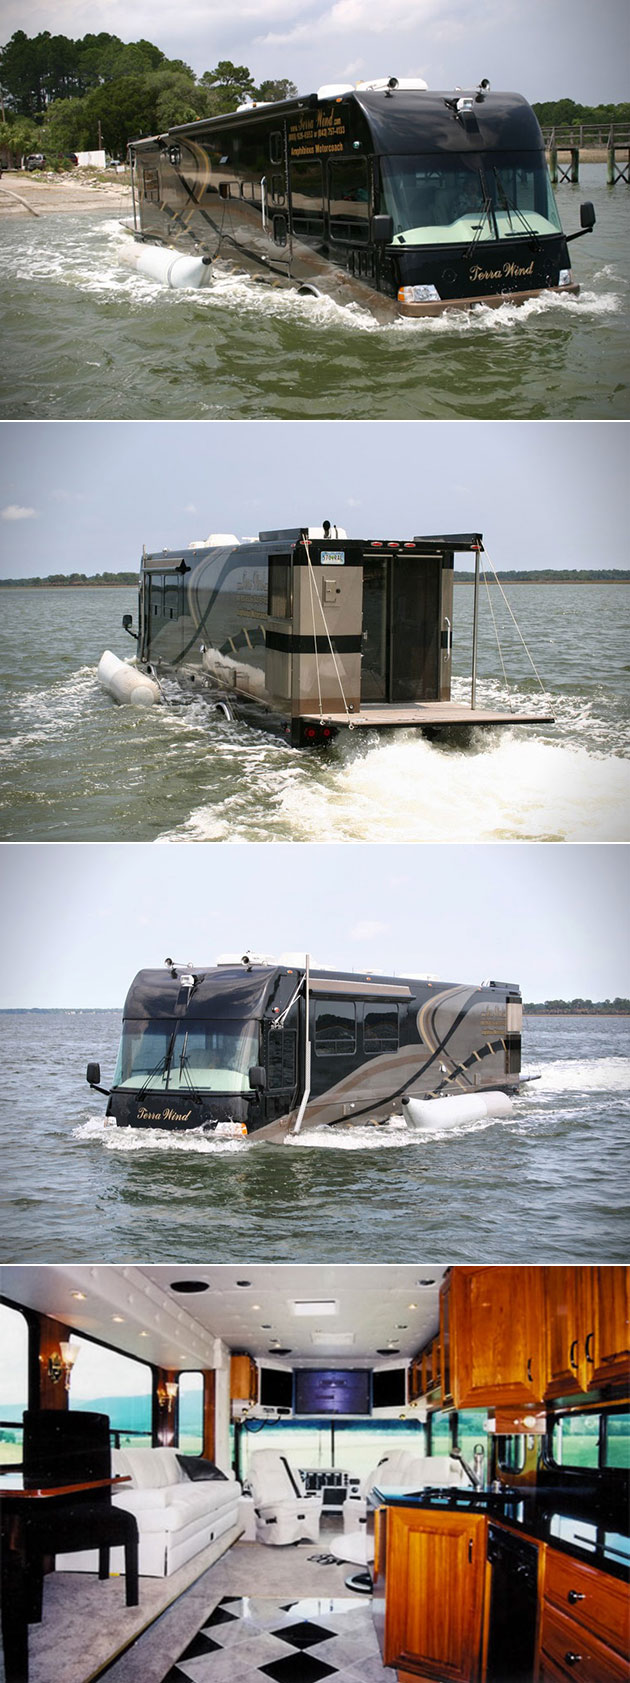 terra-wind-rv-amphibious